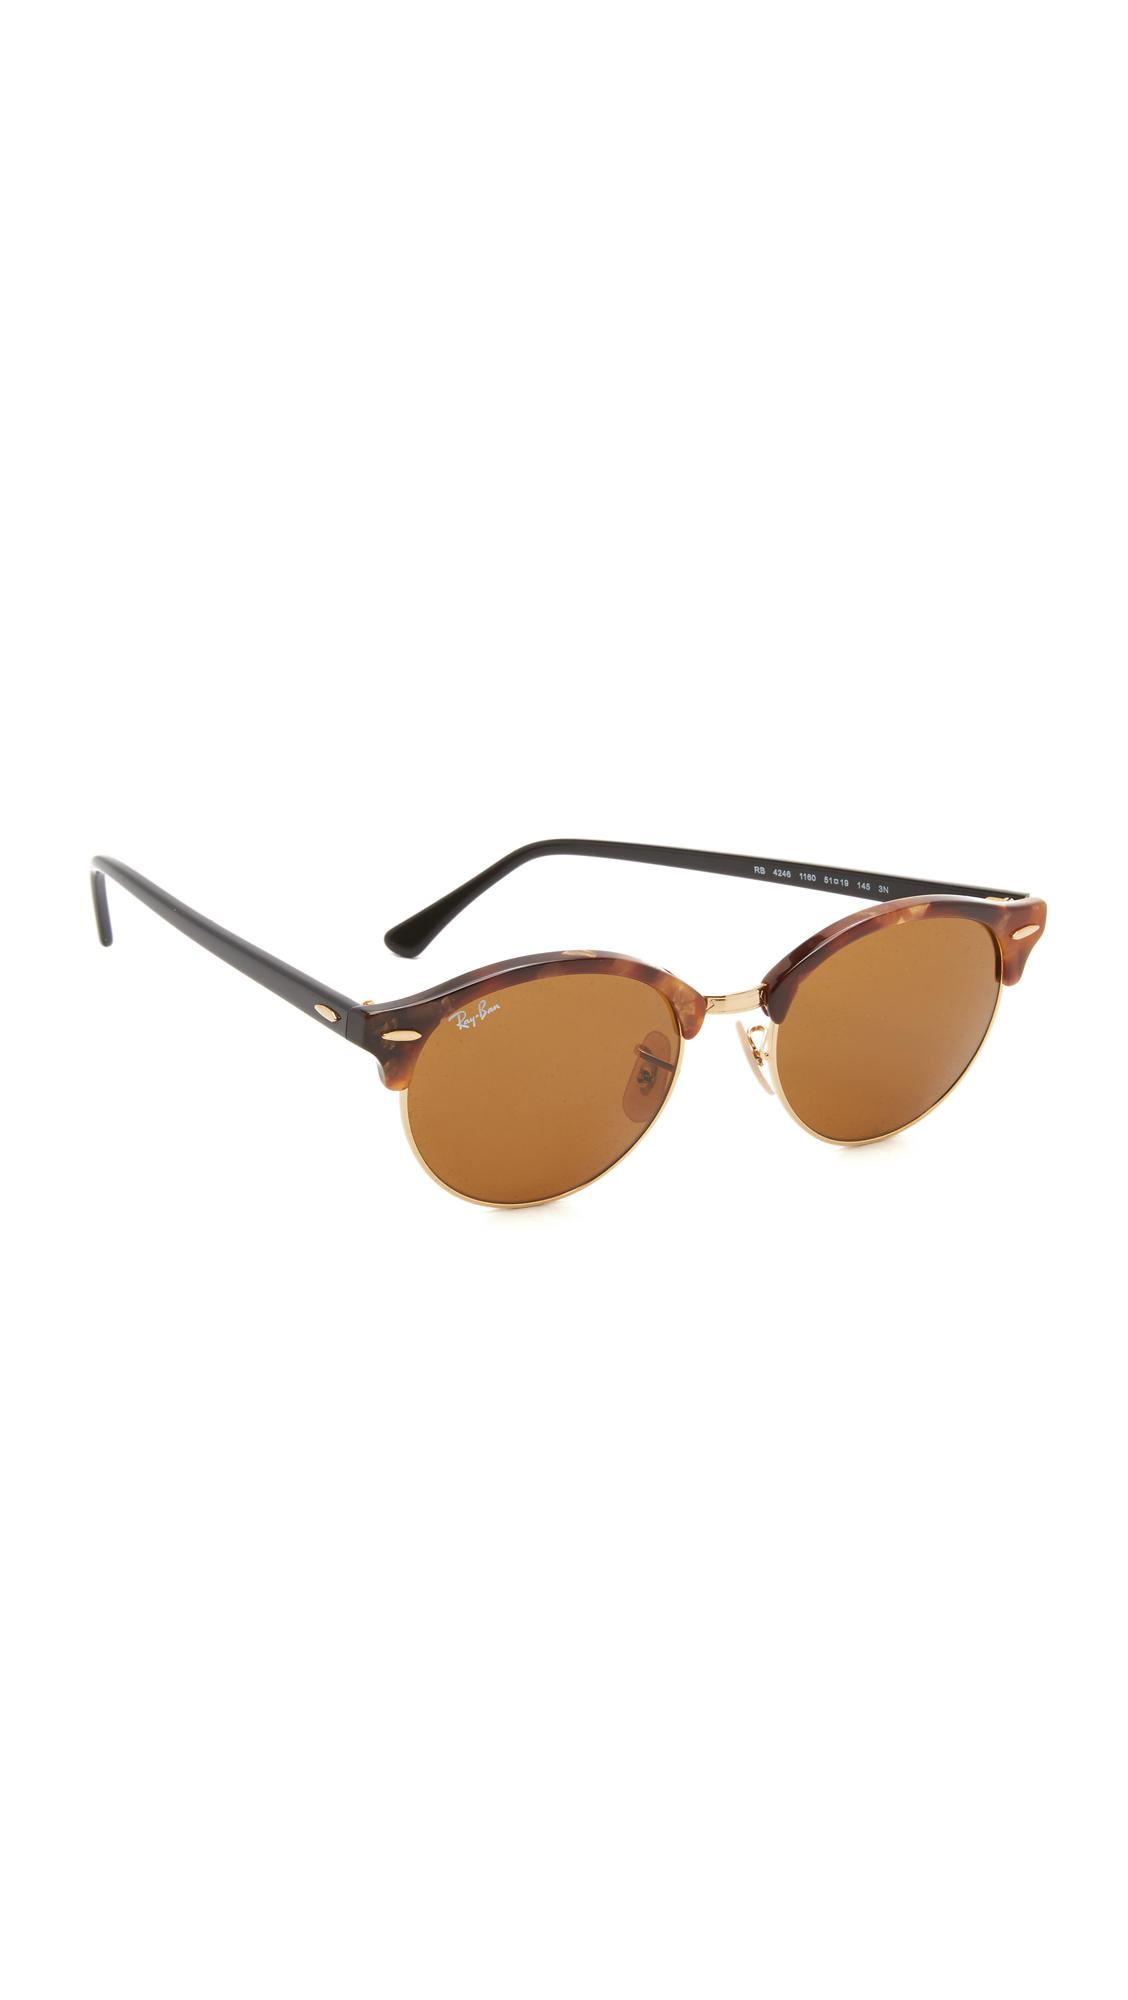 25b07808f9f03 Ray-Ban Rb4246 Clubmaster Round Sunglasses in Brown - Save 2% - Lyst